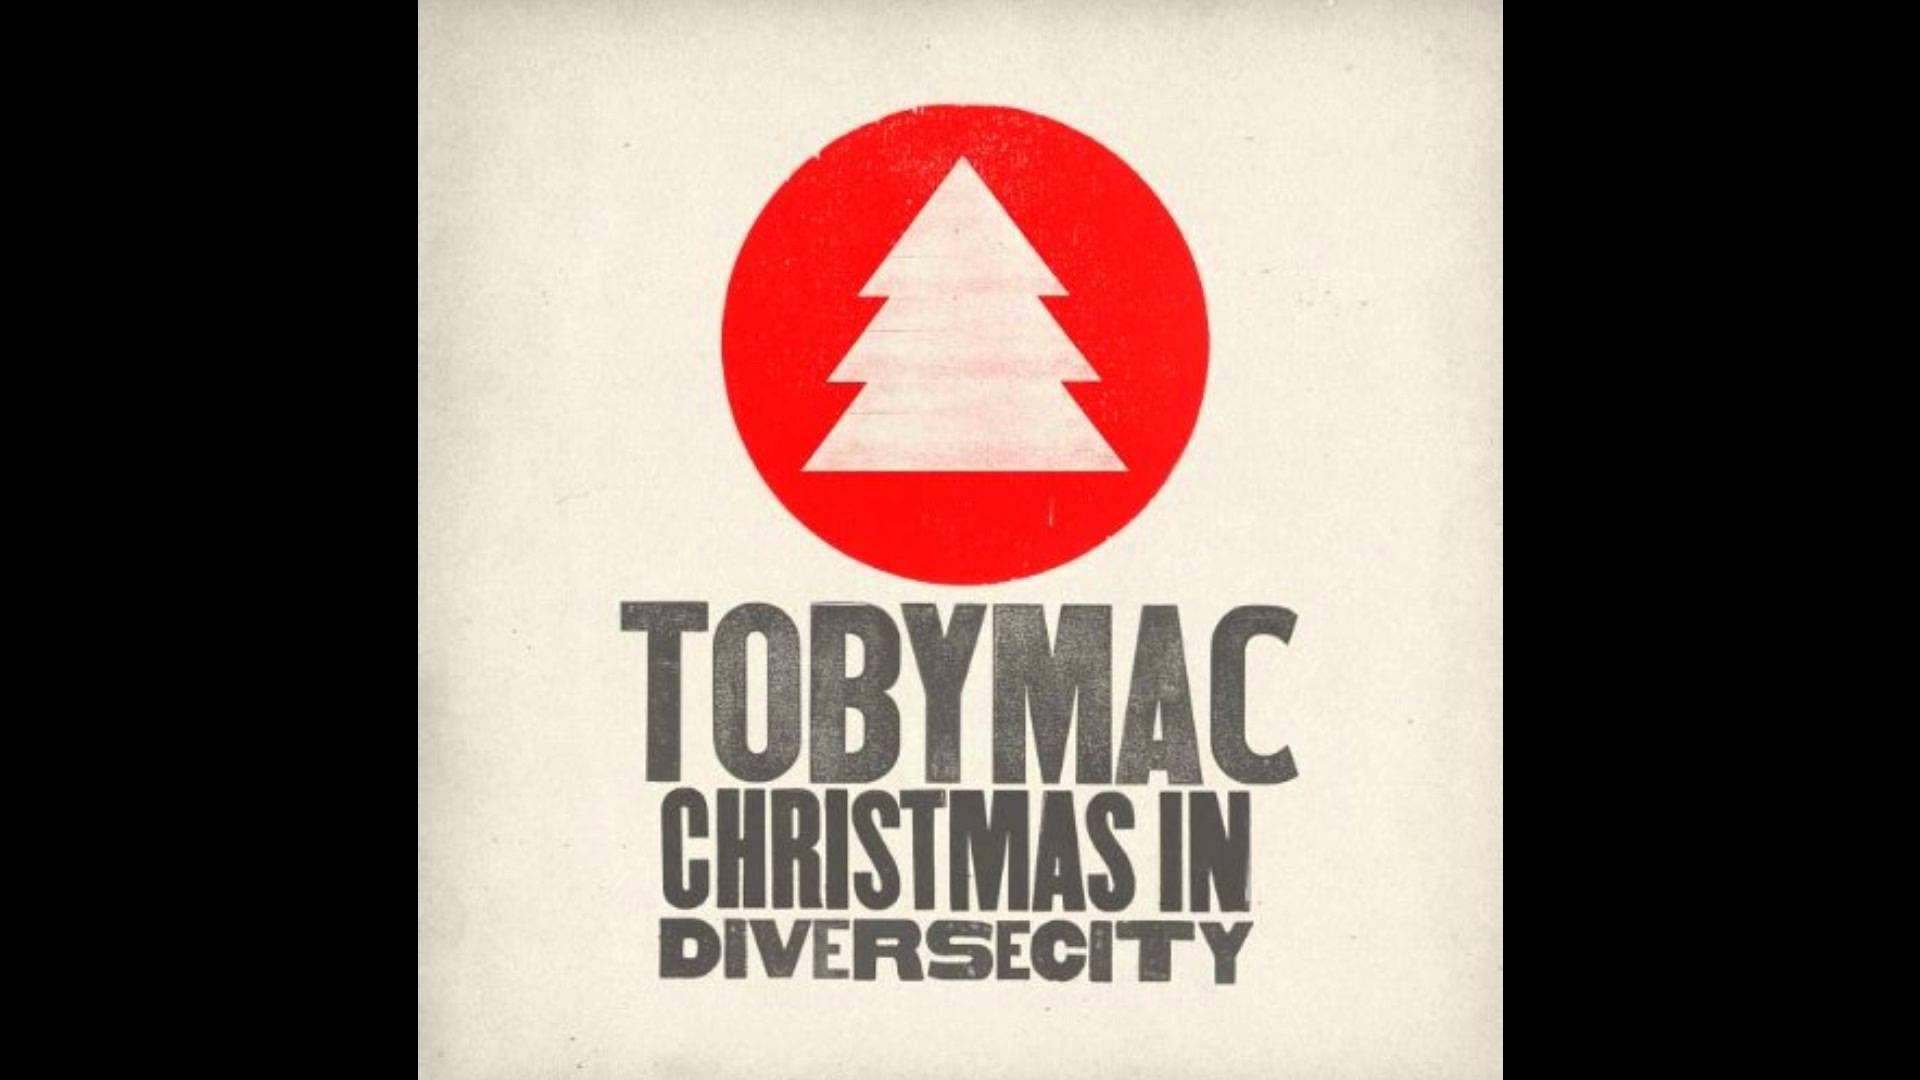 Tobymac Little Drummer Boy Playlist Christmas Music Jamie Grace Jesus Songs Drummer Boy